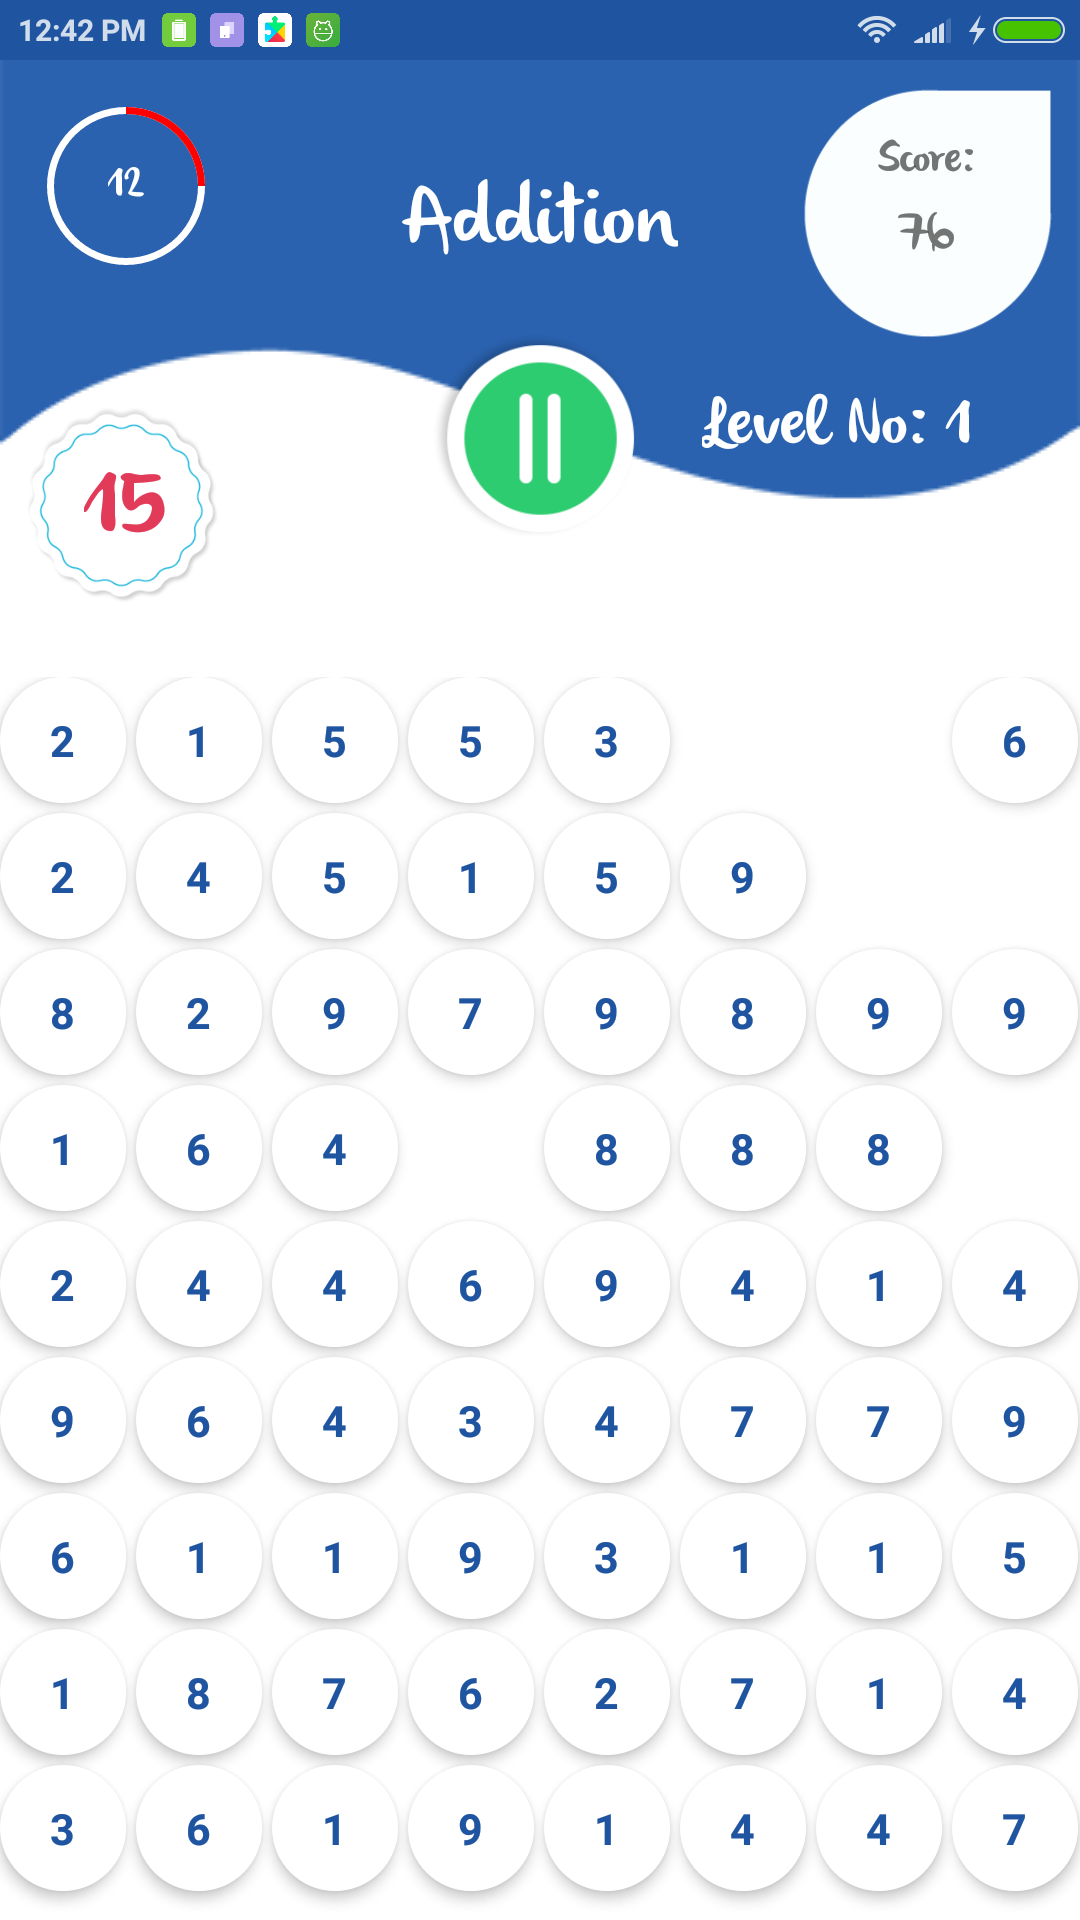 maths practice - app - addition -multiplication - android - source code - free - arkayapps